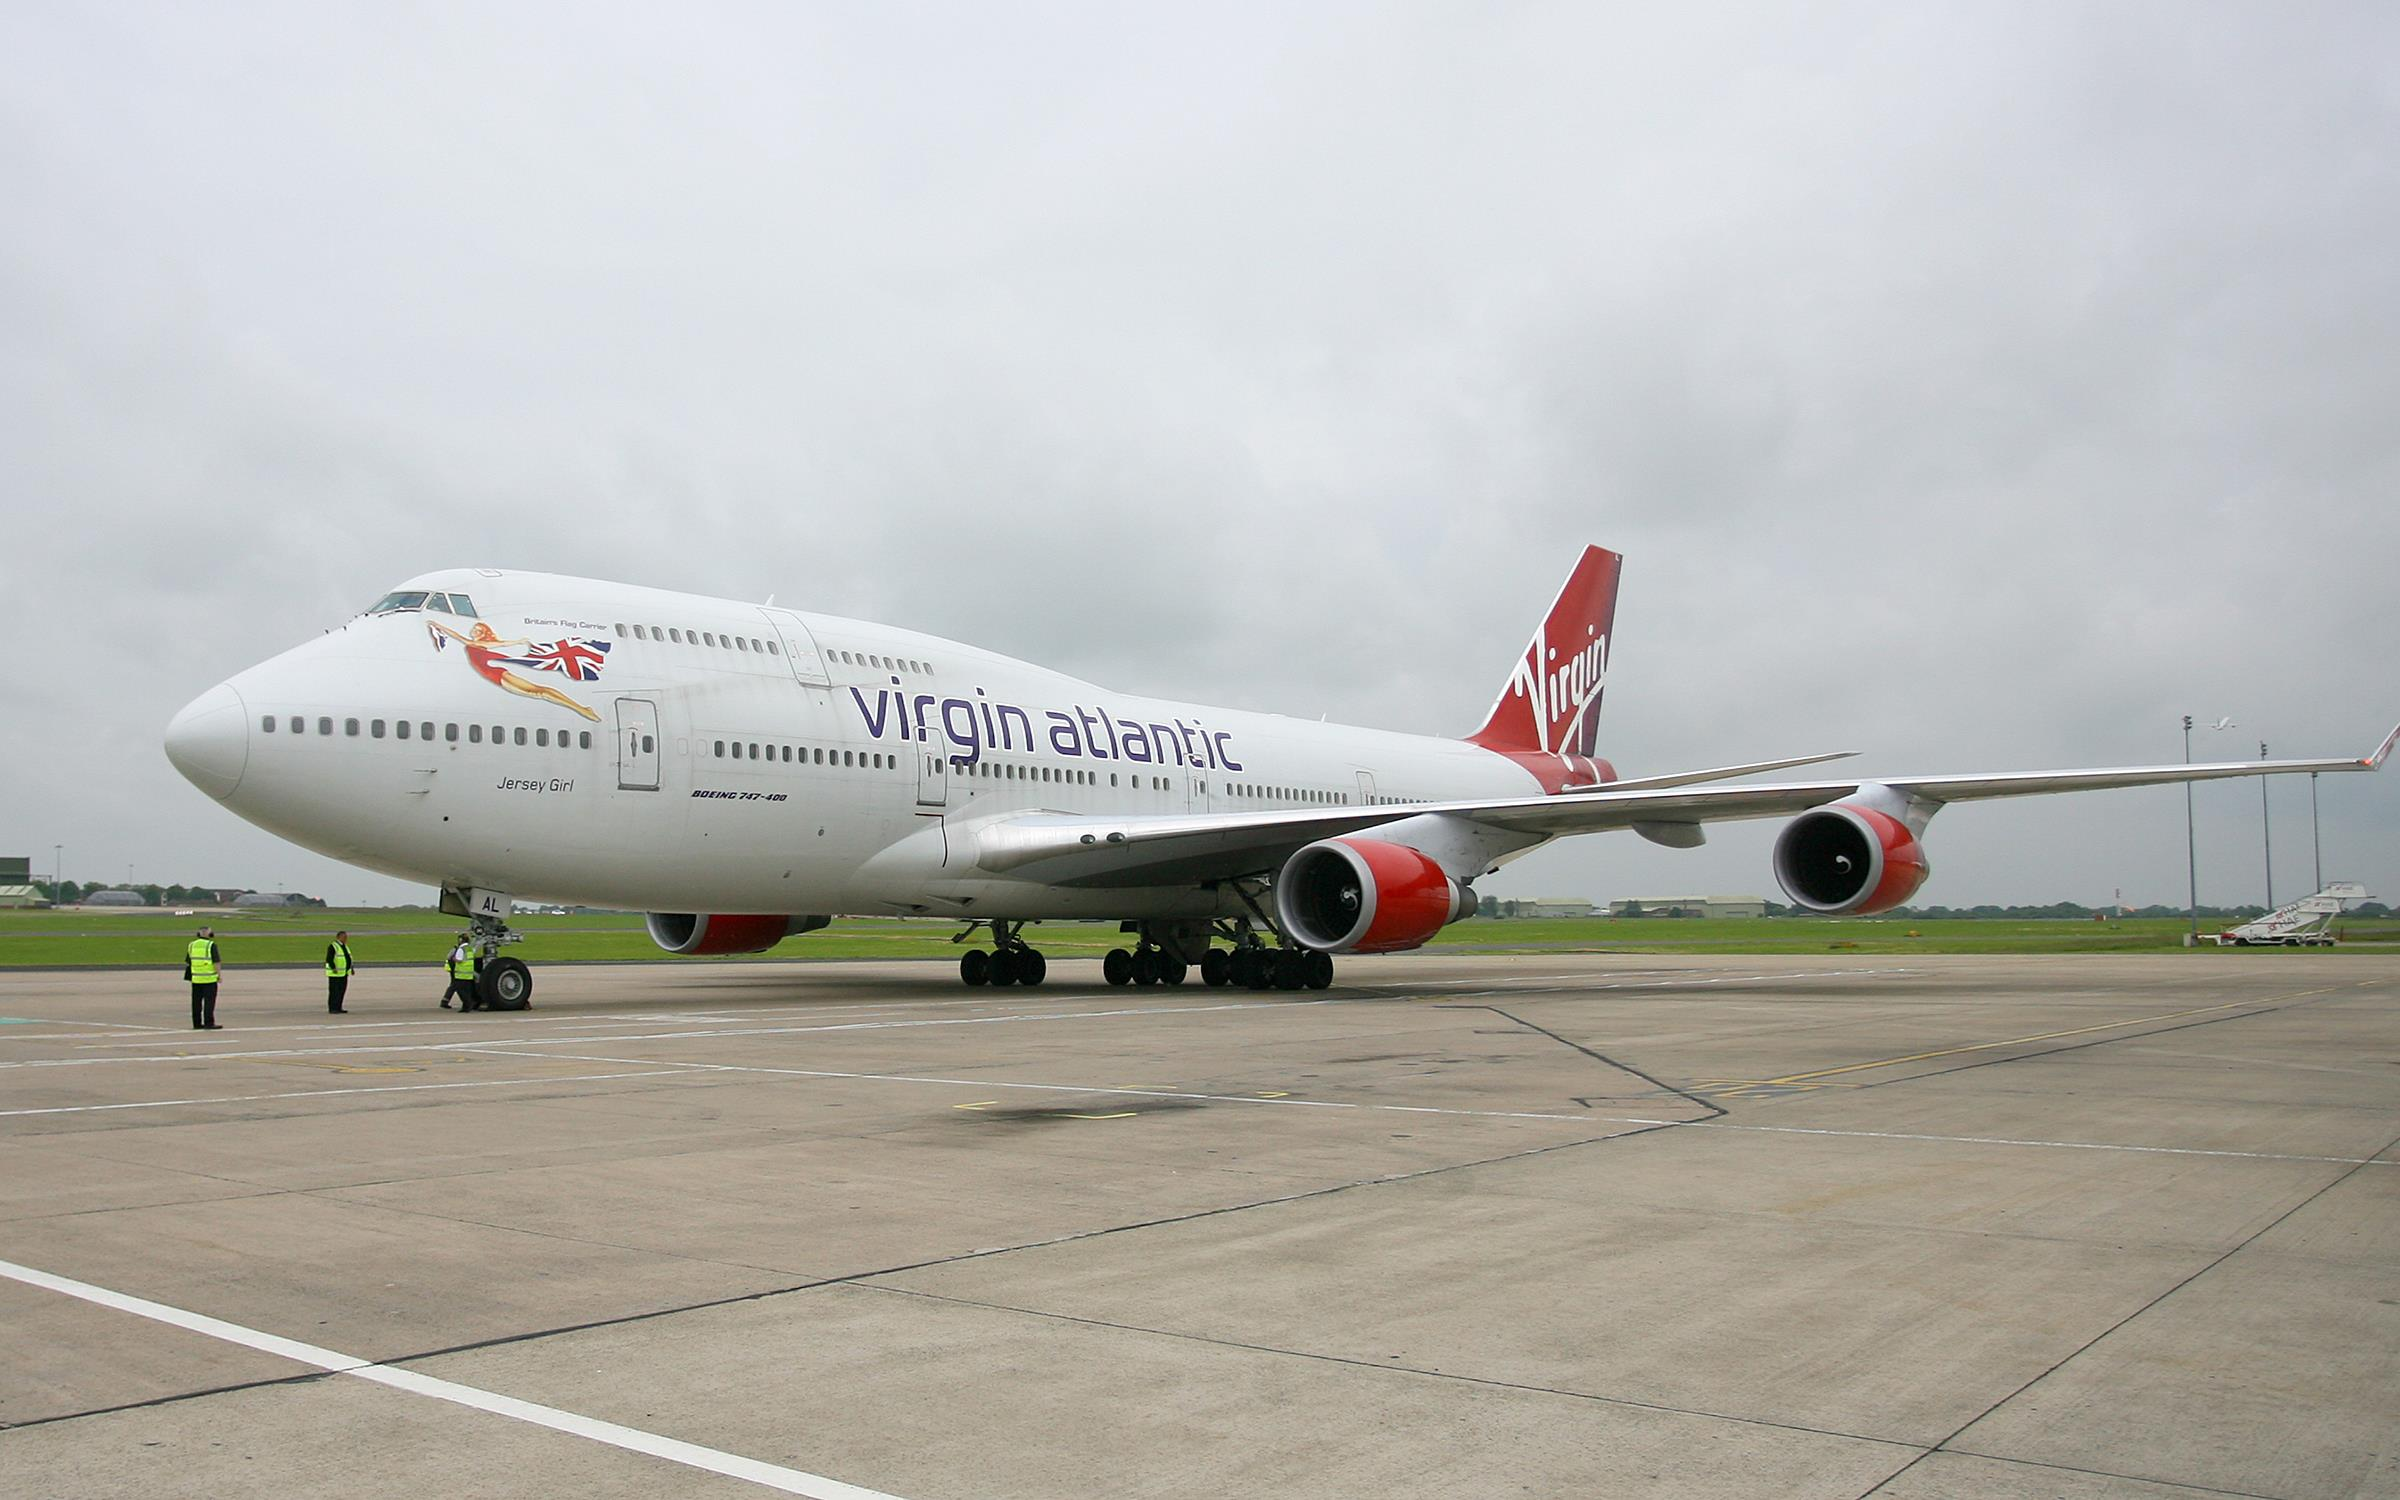 Virgin Atlantic announces biggest ever season from Belfast International Airport